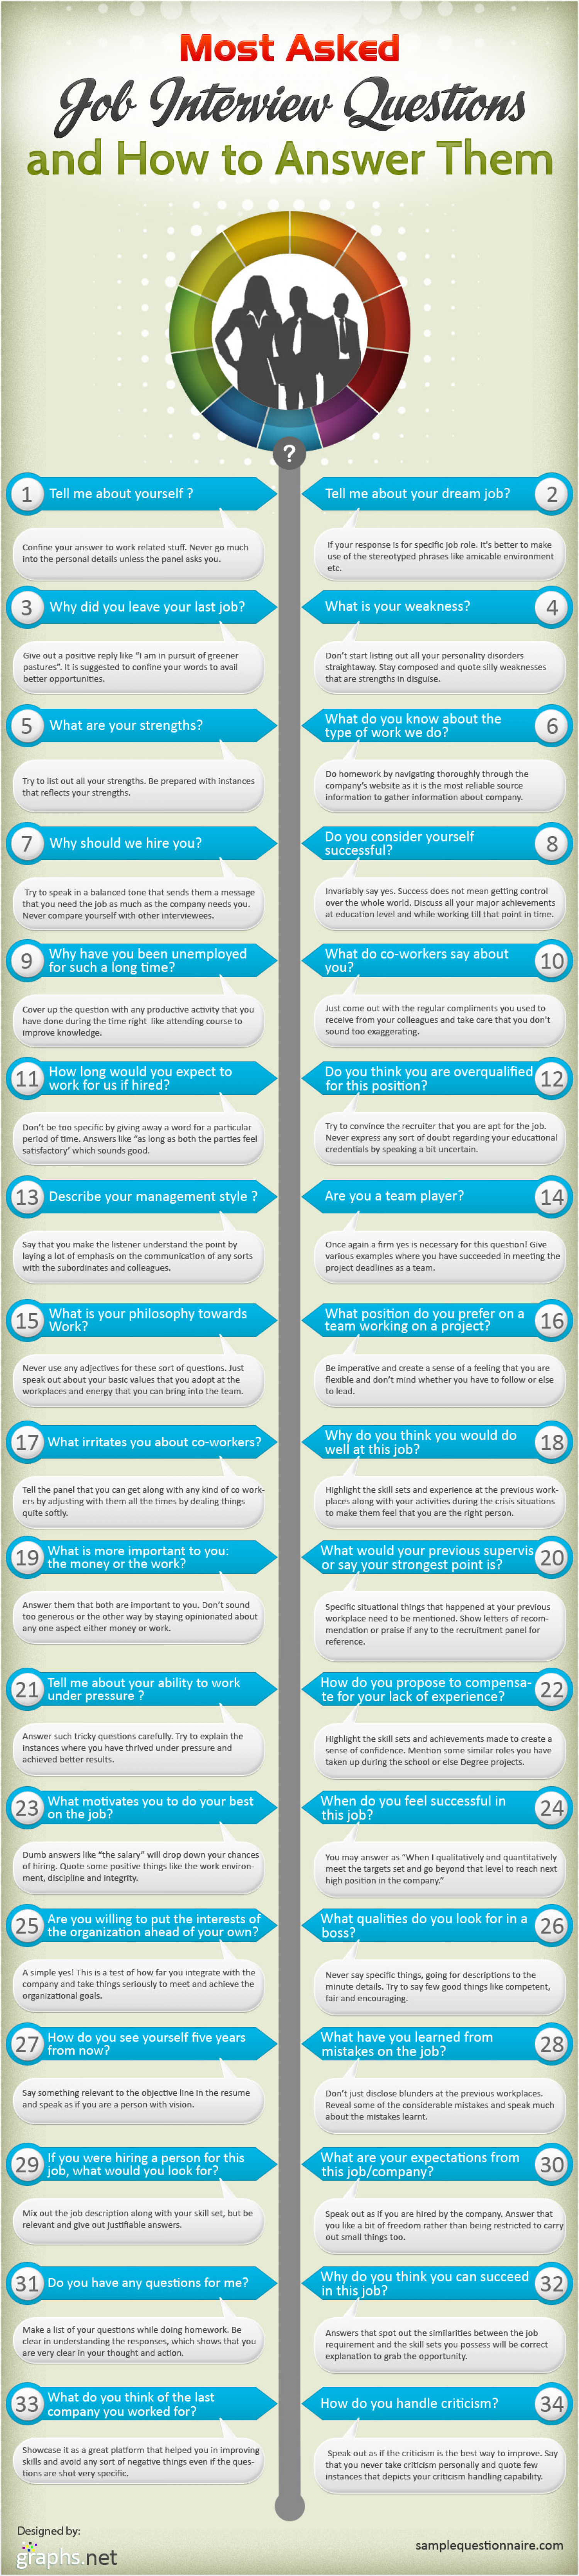 Most Asked Job Interview Questions and How to Answer Them Infographic